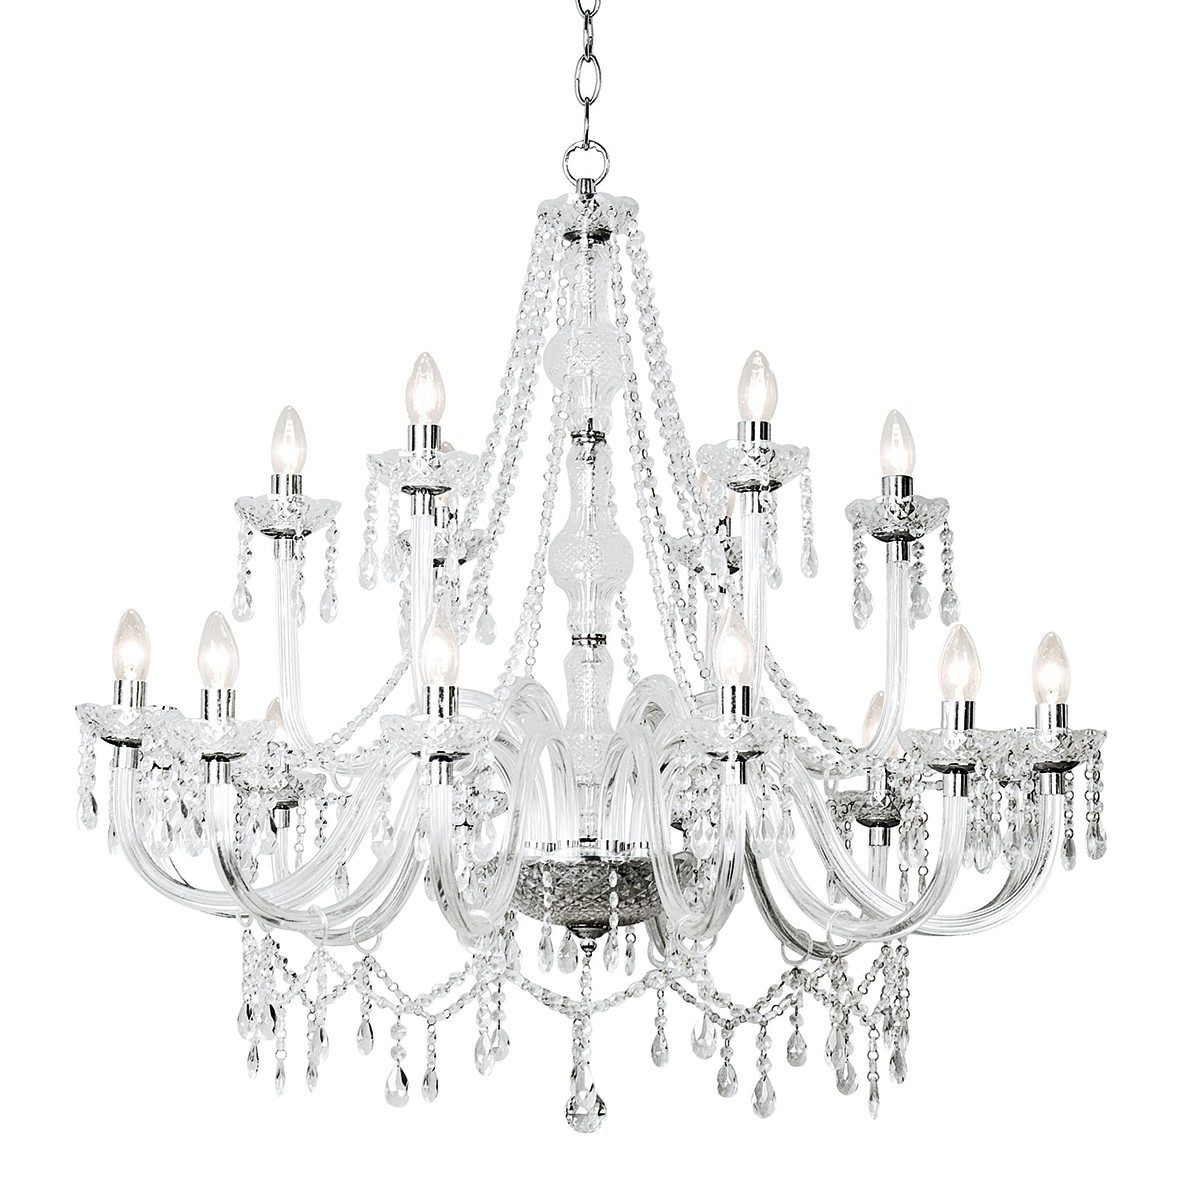 Katie 18 Light Chandelier Dual Mount Acrylic Glass Shade Sold Separately Throughout Preferred Acrylic Chandelier Lighting (Gallery 11 of 15)